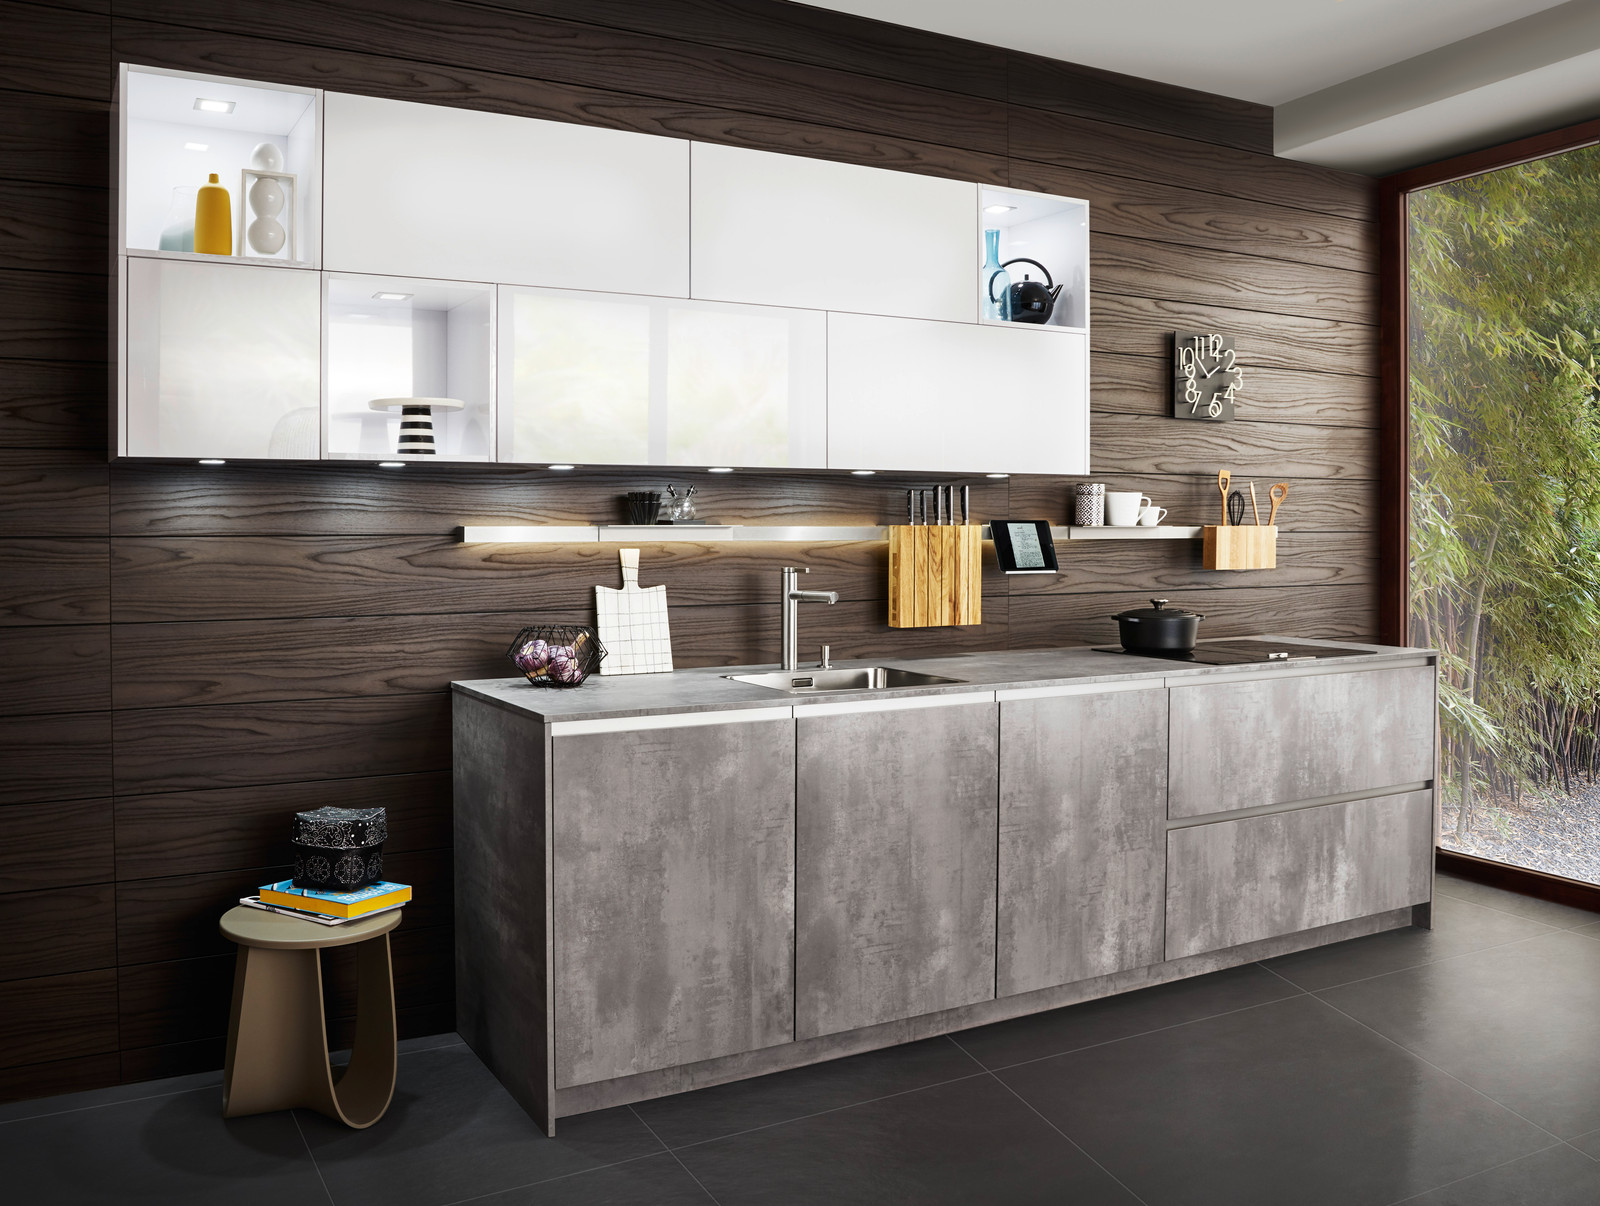 The Room As A Whole, Kitchen, And Living The Area Is One. The Two Surfaces,  Combined In Use Here In A Modern Way, Look Warm And Natural: They Are  Fascinated ...